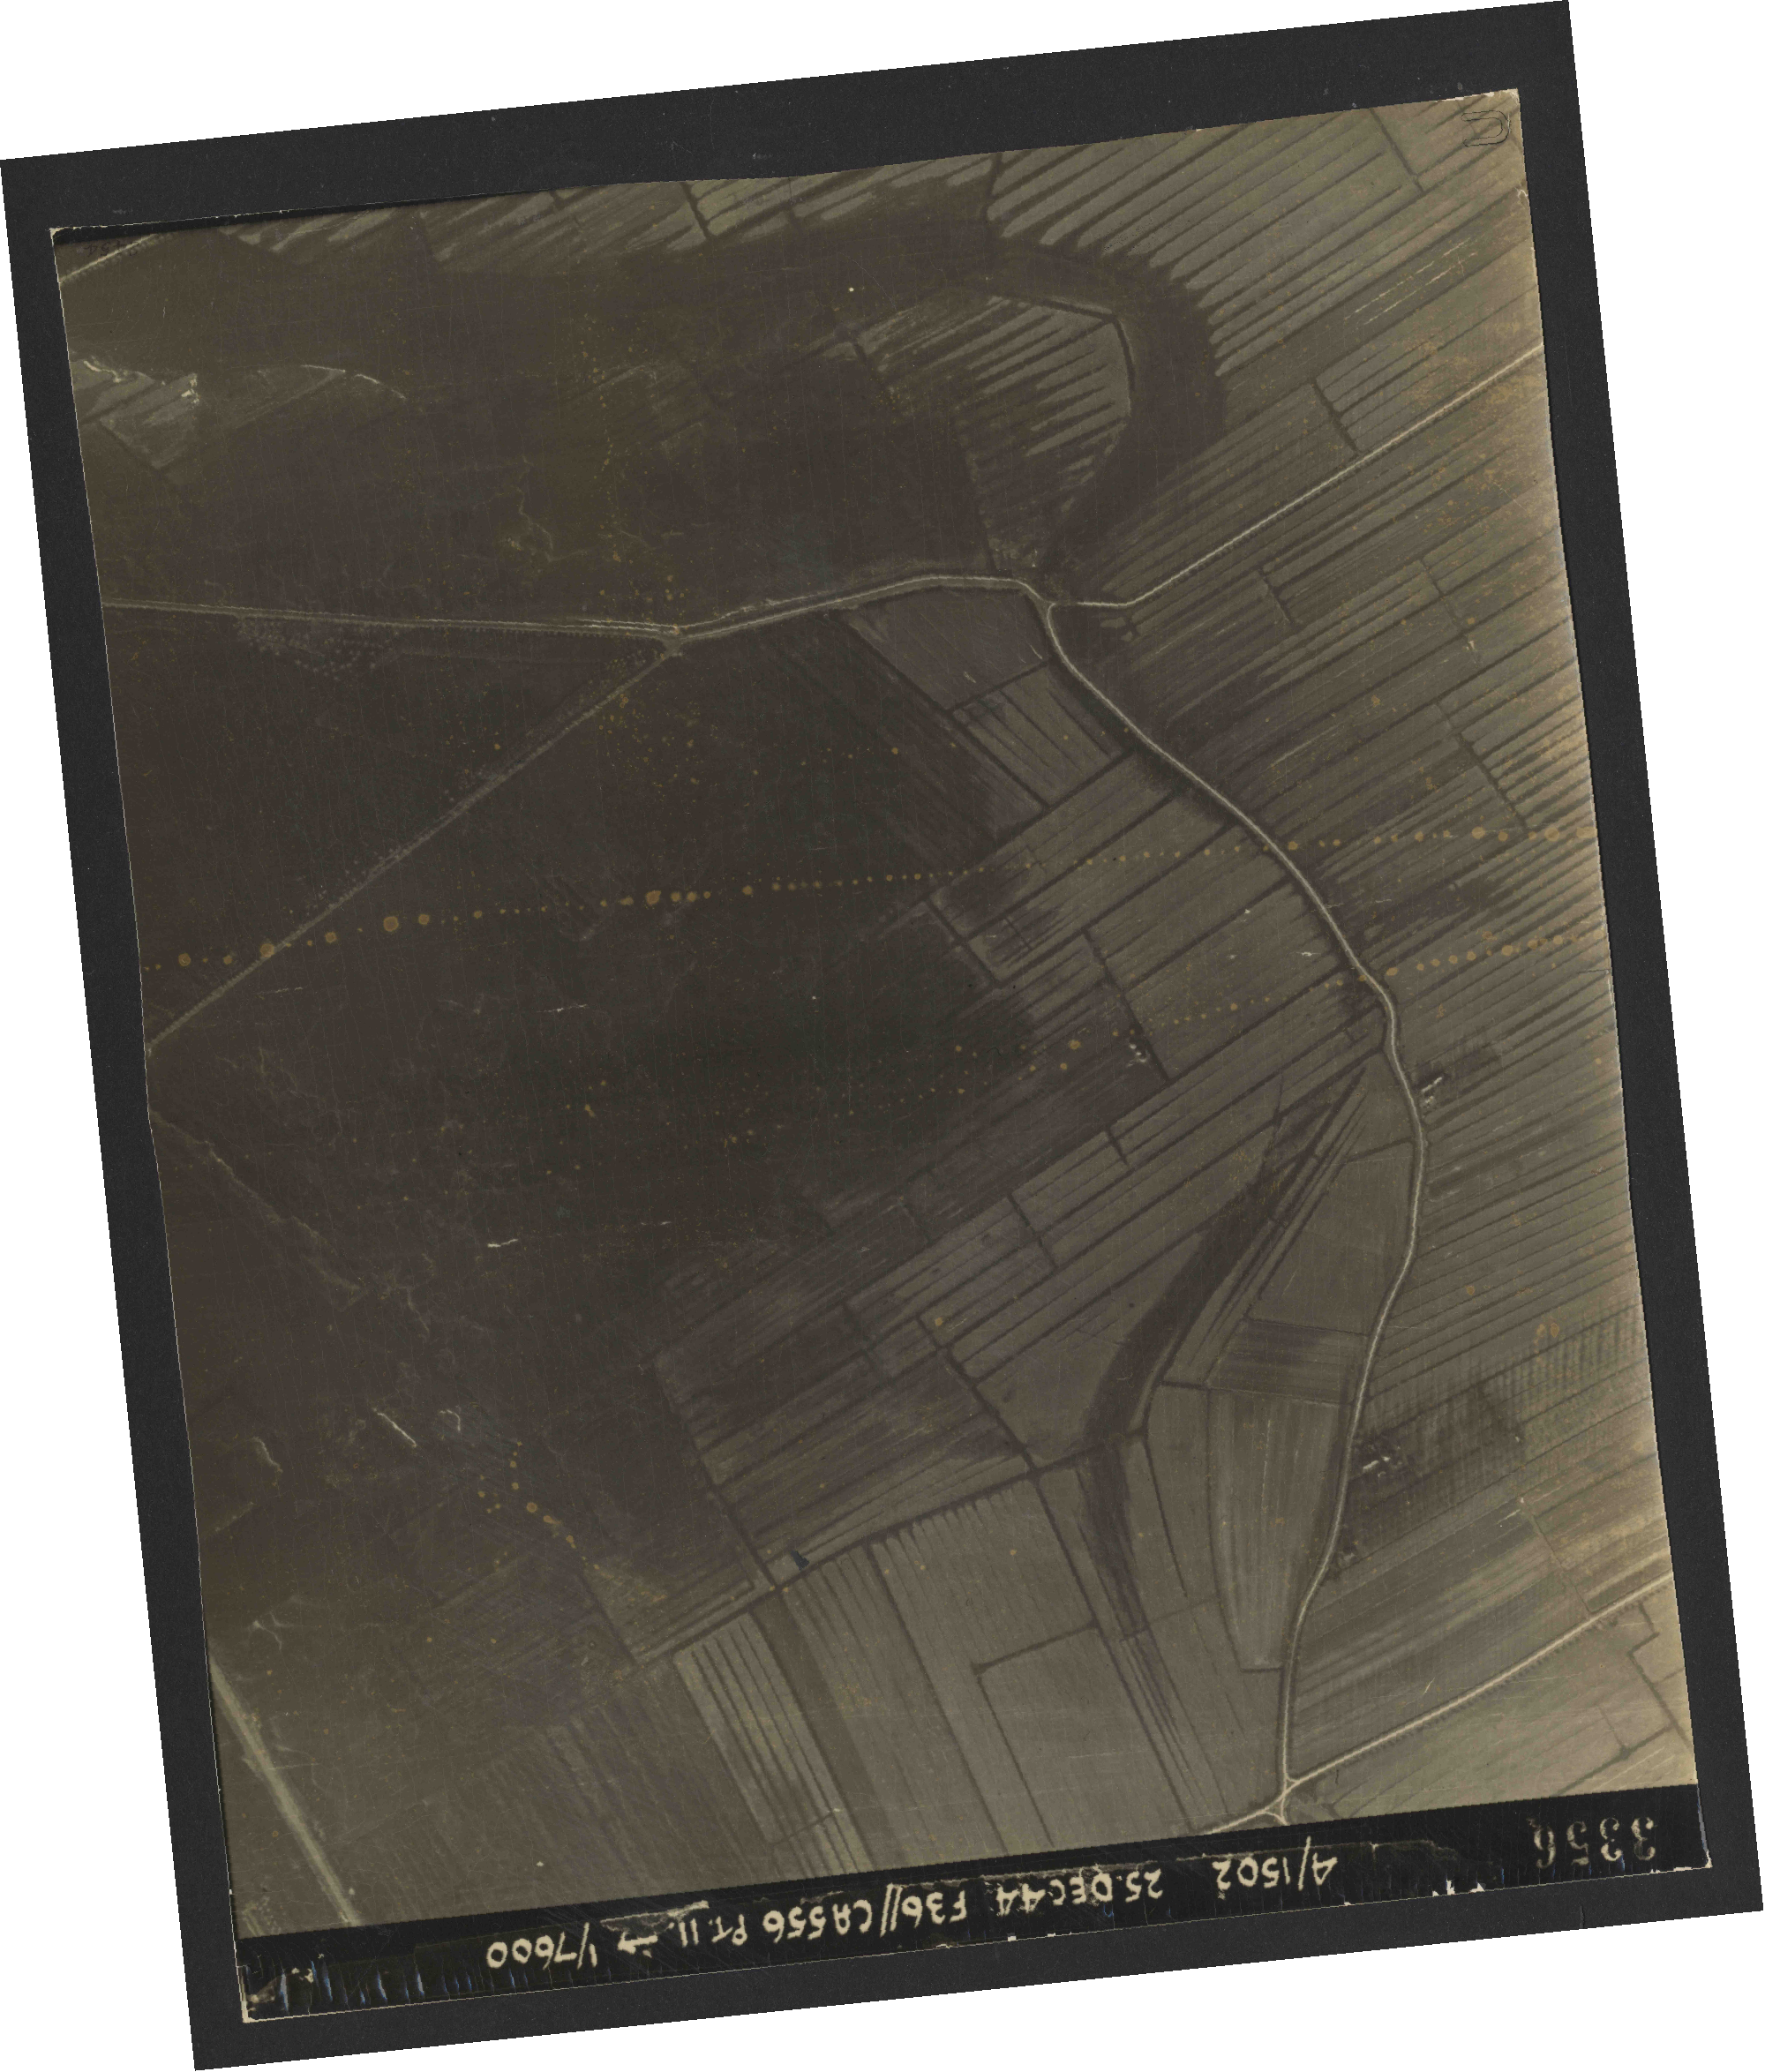 Collection RAF aerial photos 1940-1945 - flight 306, run 12, photo 3356